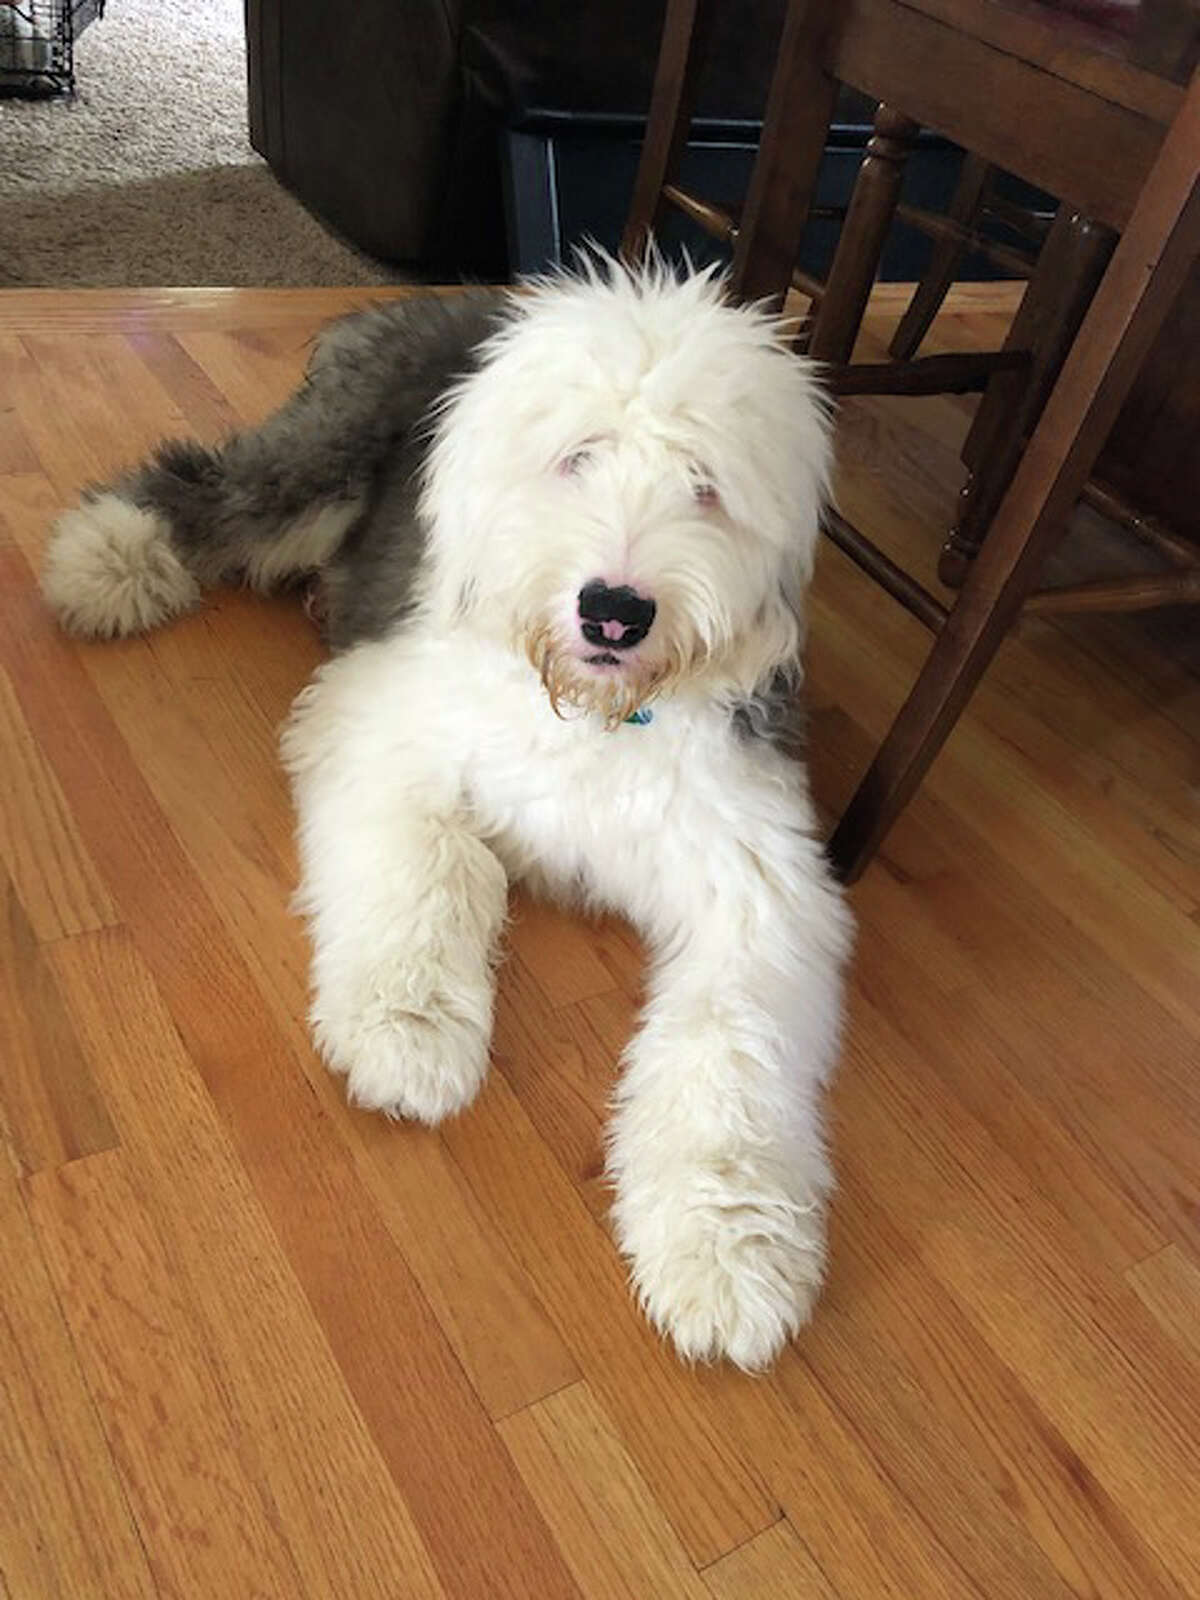 Merissa Mabee sent in this picture of Moose, a 7-month-old English sheepdog rescue.